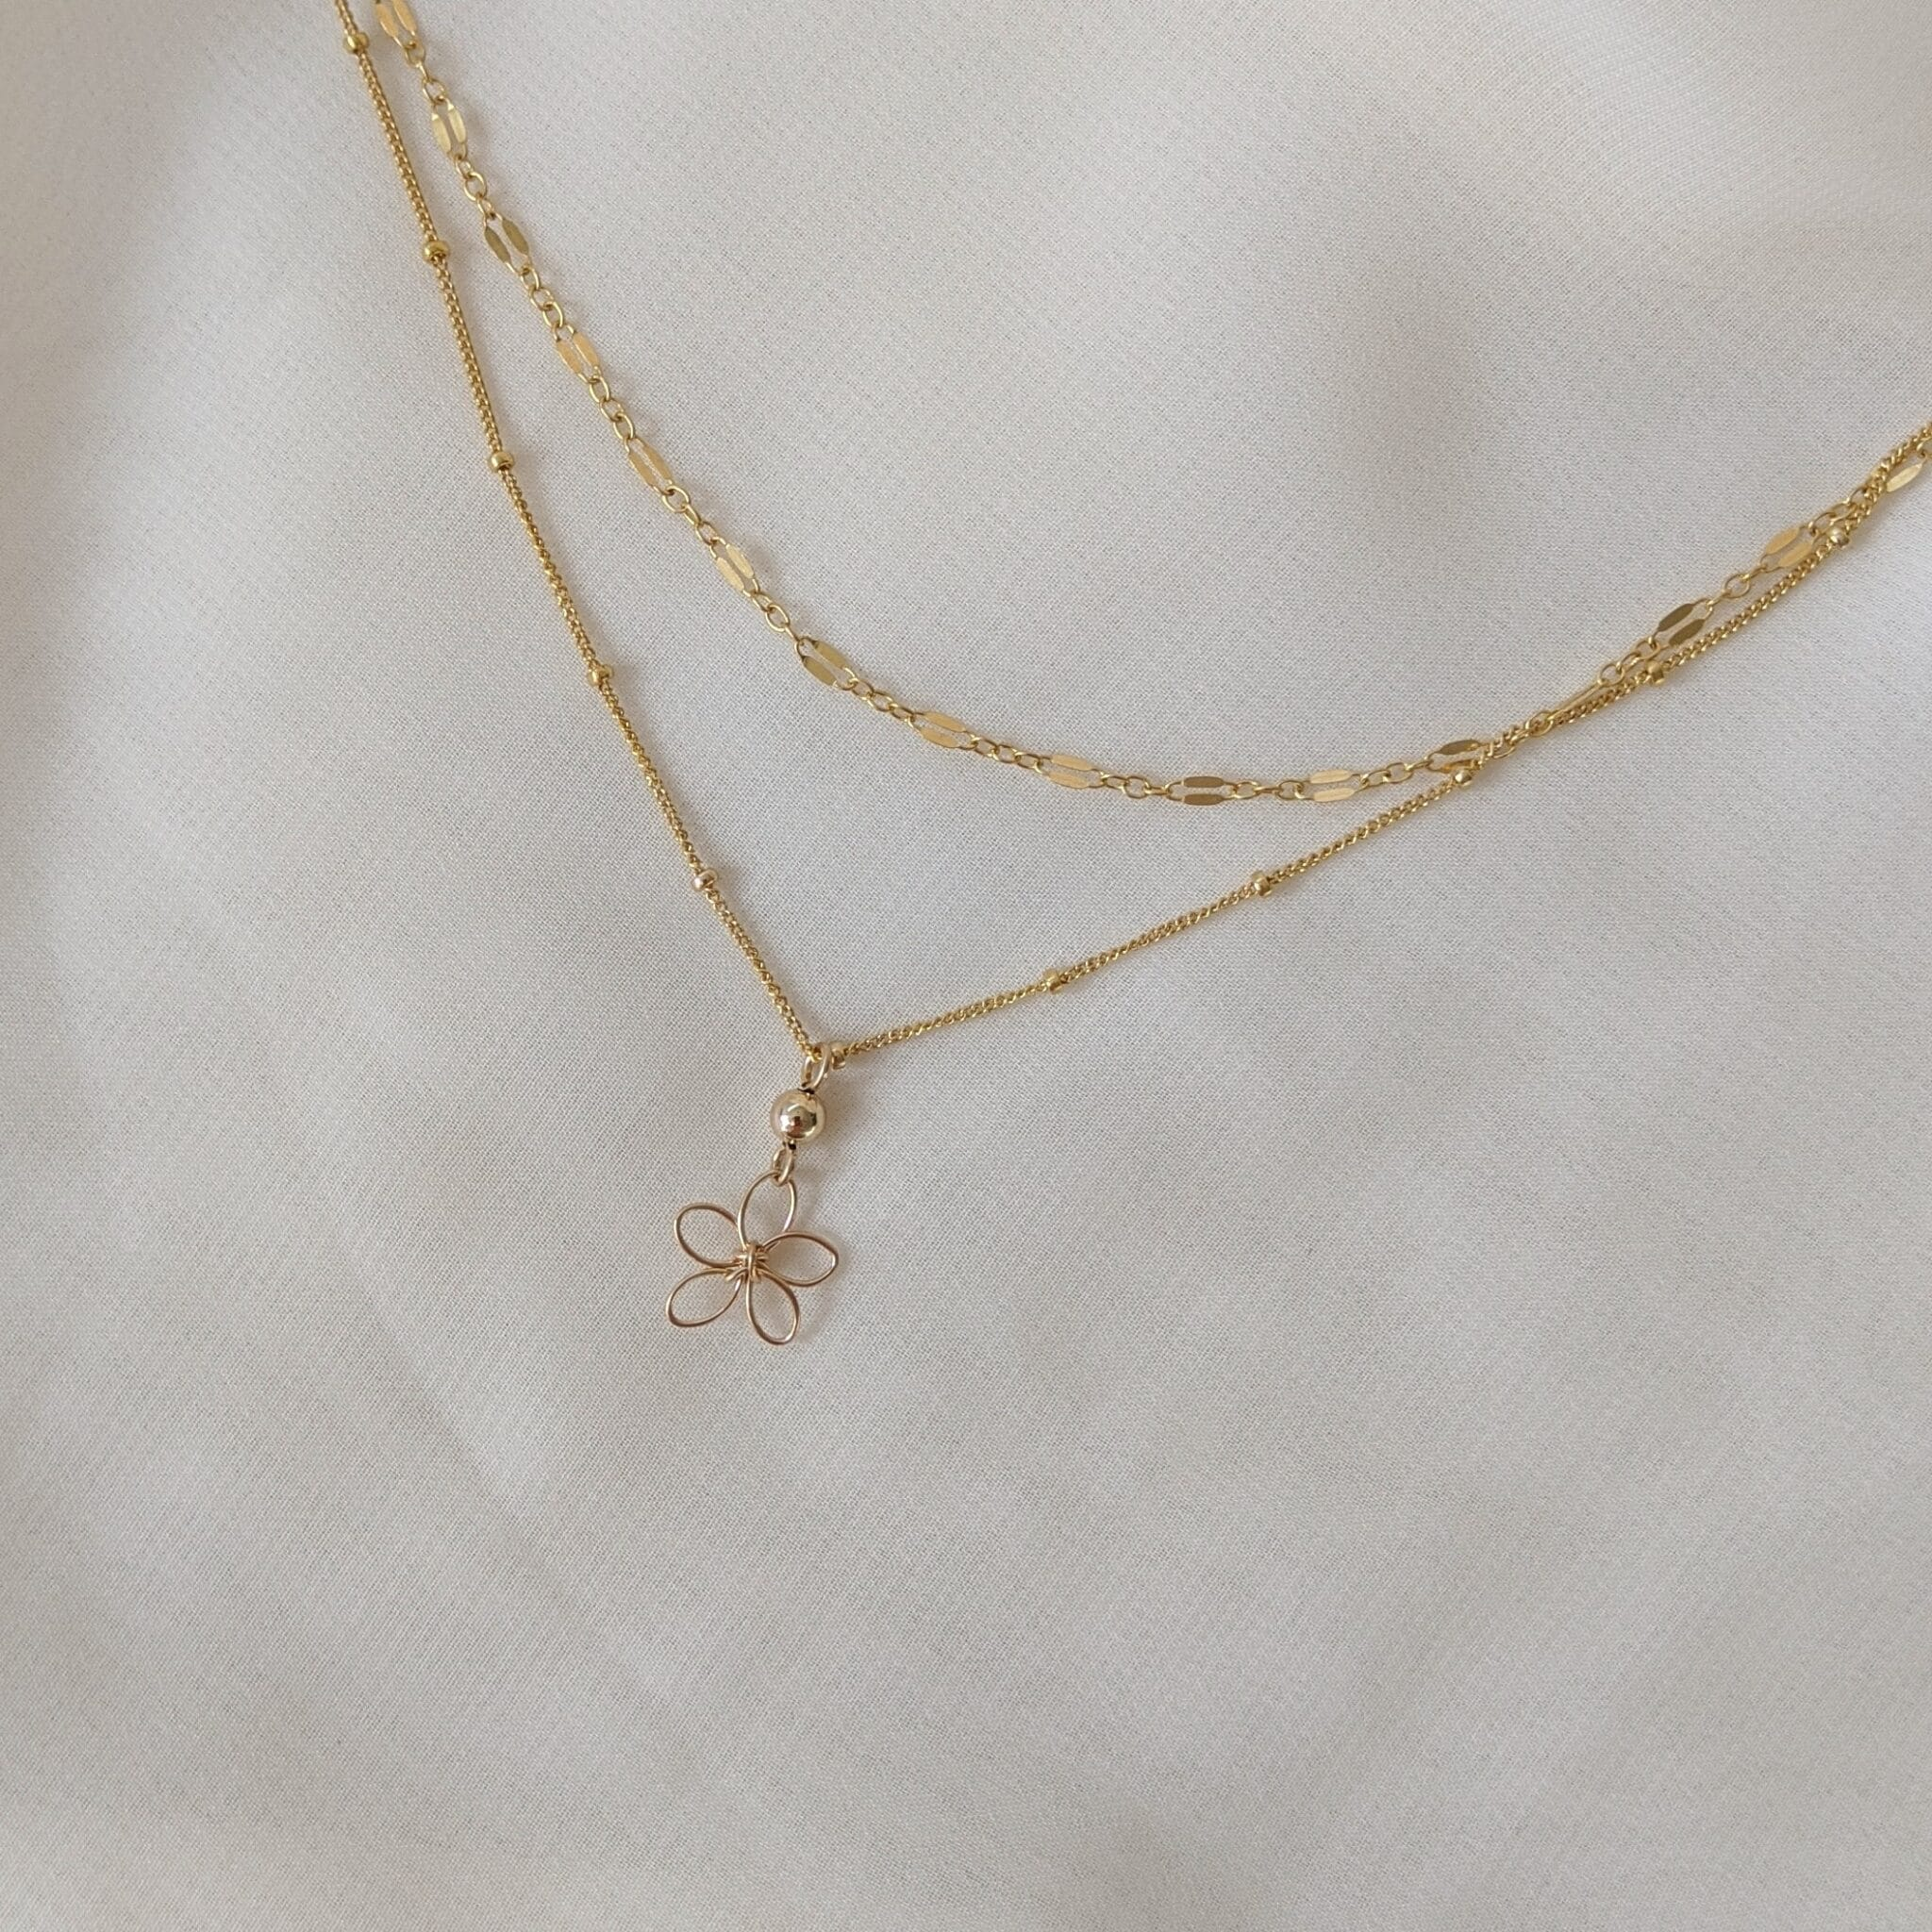 Sea Lavender Necklace – Gold Filled By Little Hangings